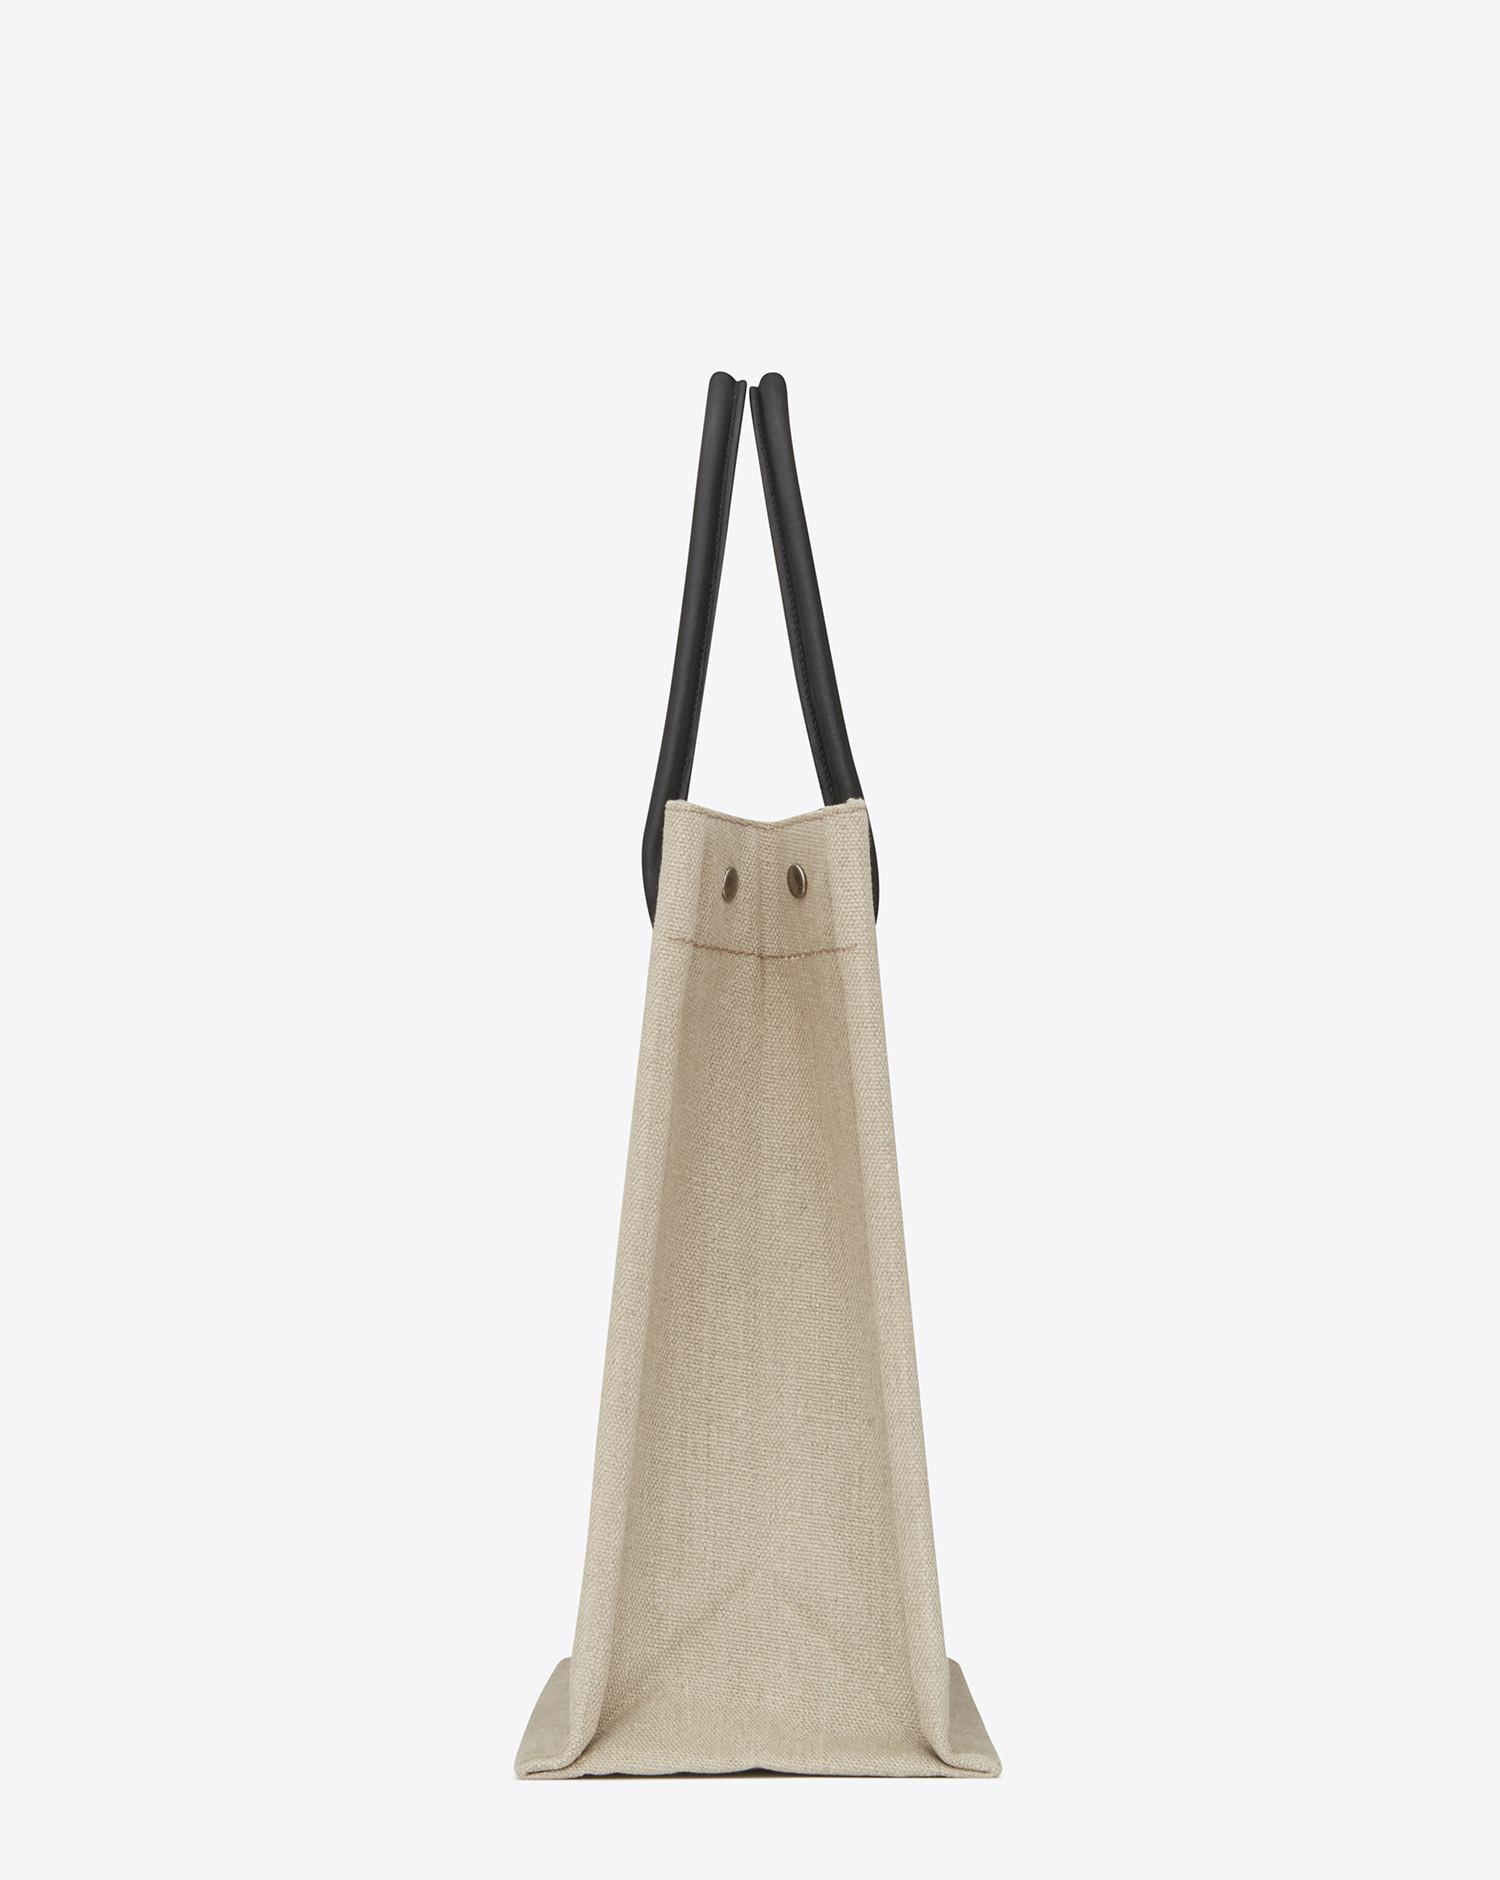 ebf8164b9d2 Saint Laurent Rive Gauche Tote Bag In Linen And Leather in White - Lyst